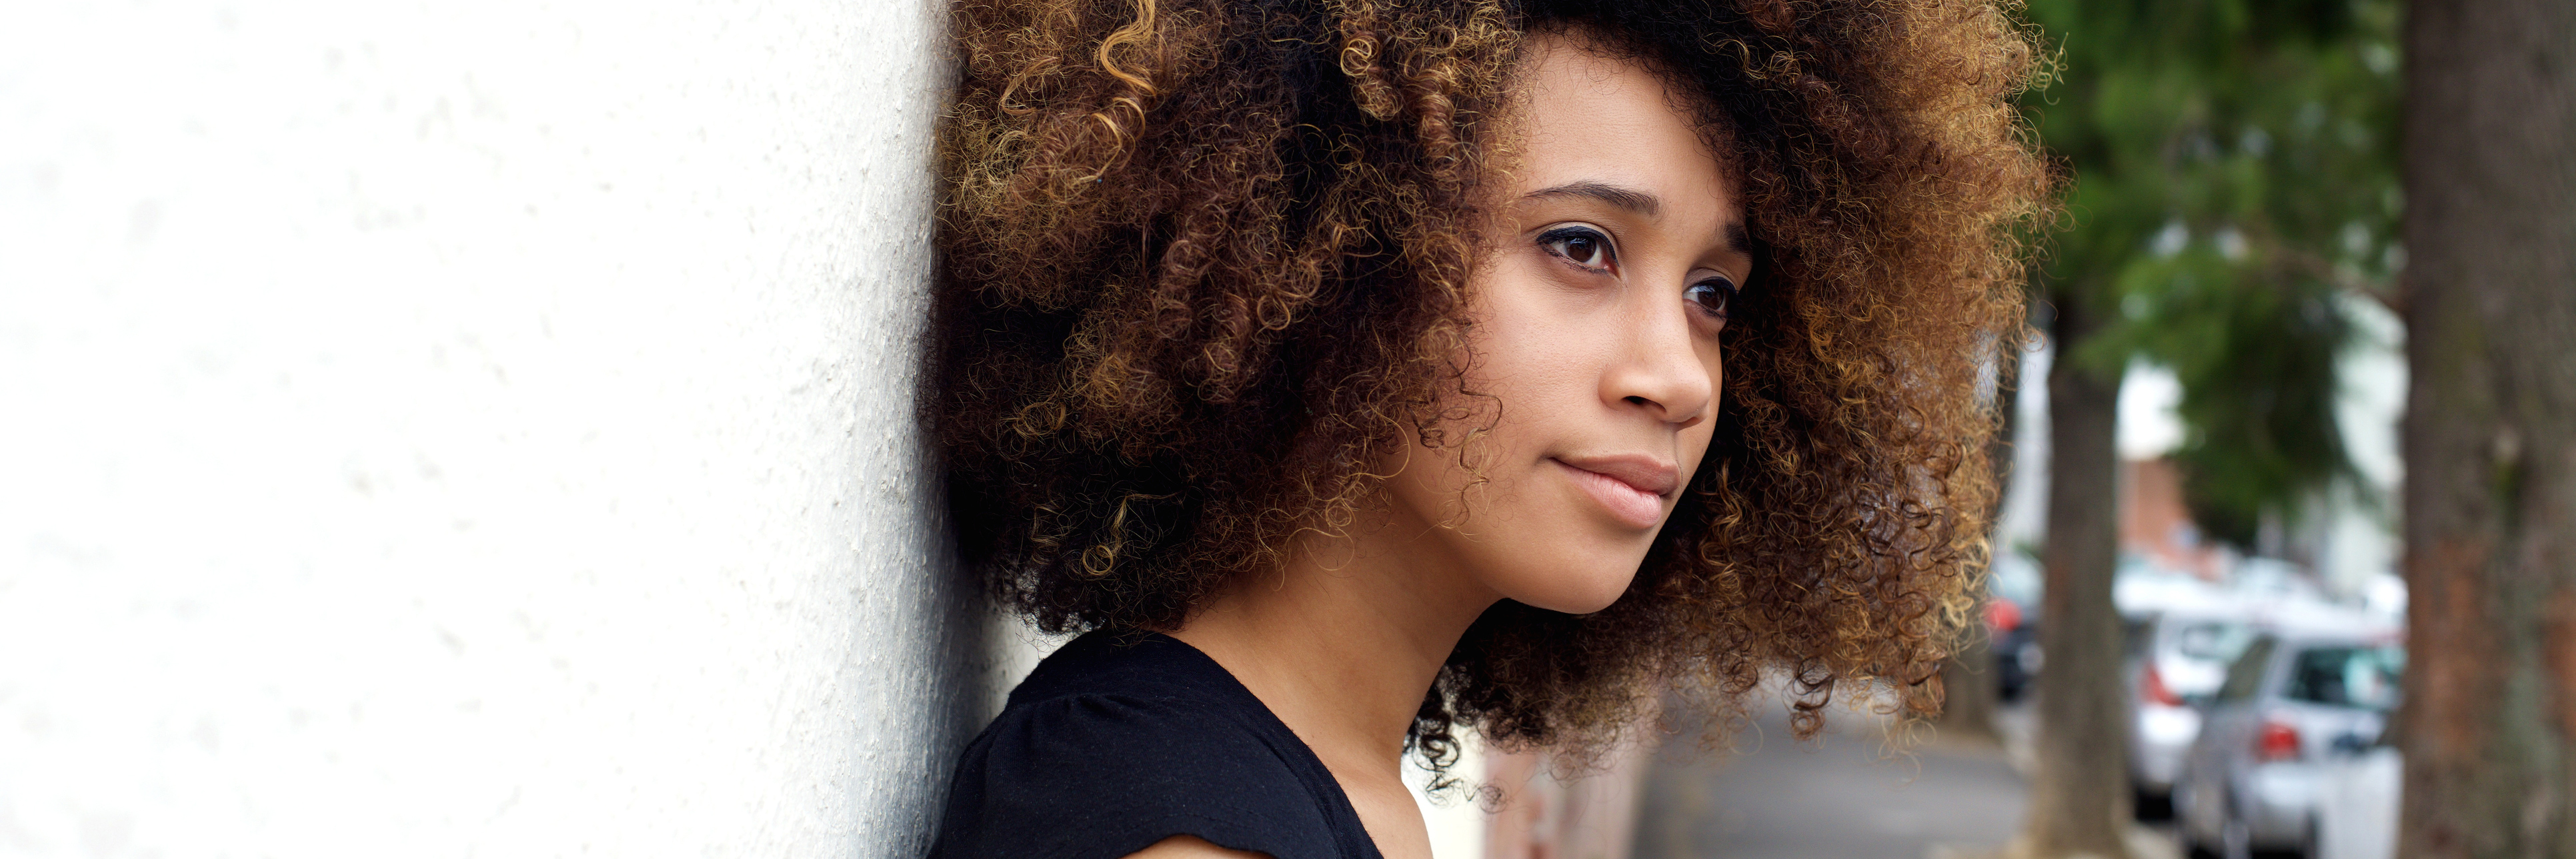 Side portrait of young african american woman leaning against wall and looking away